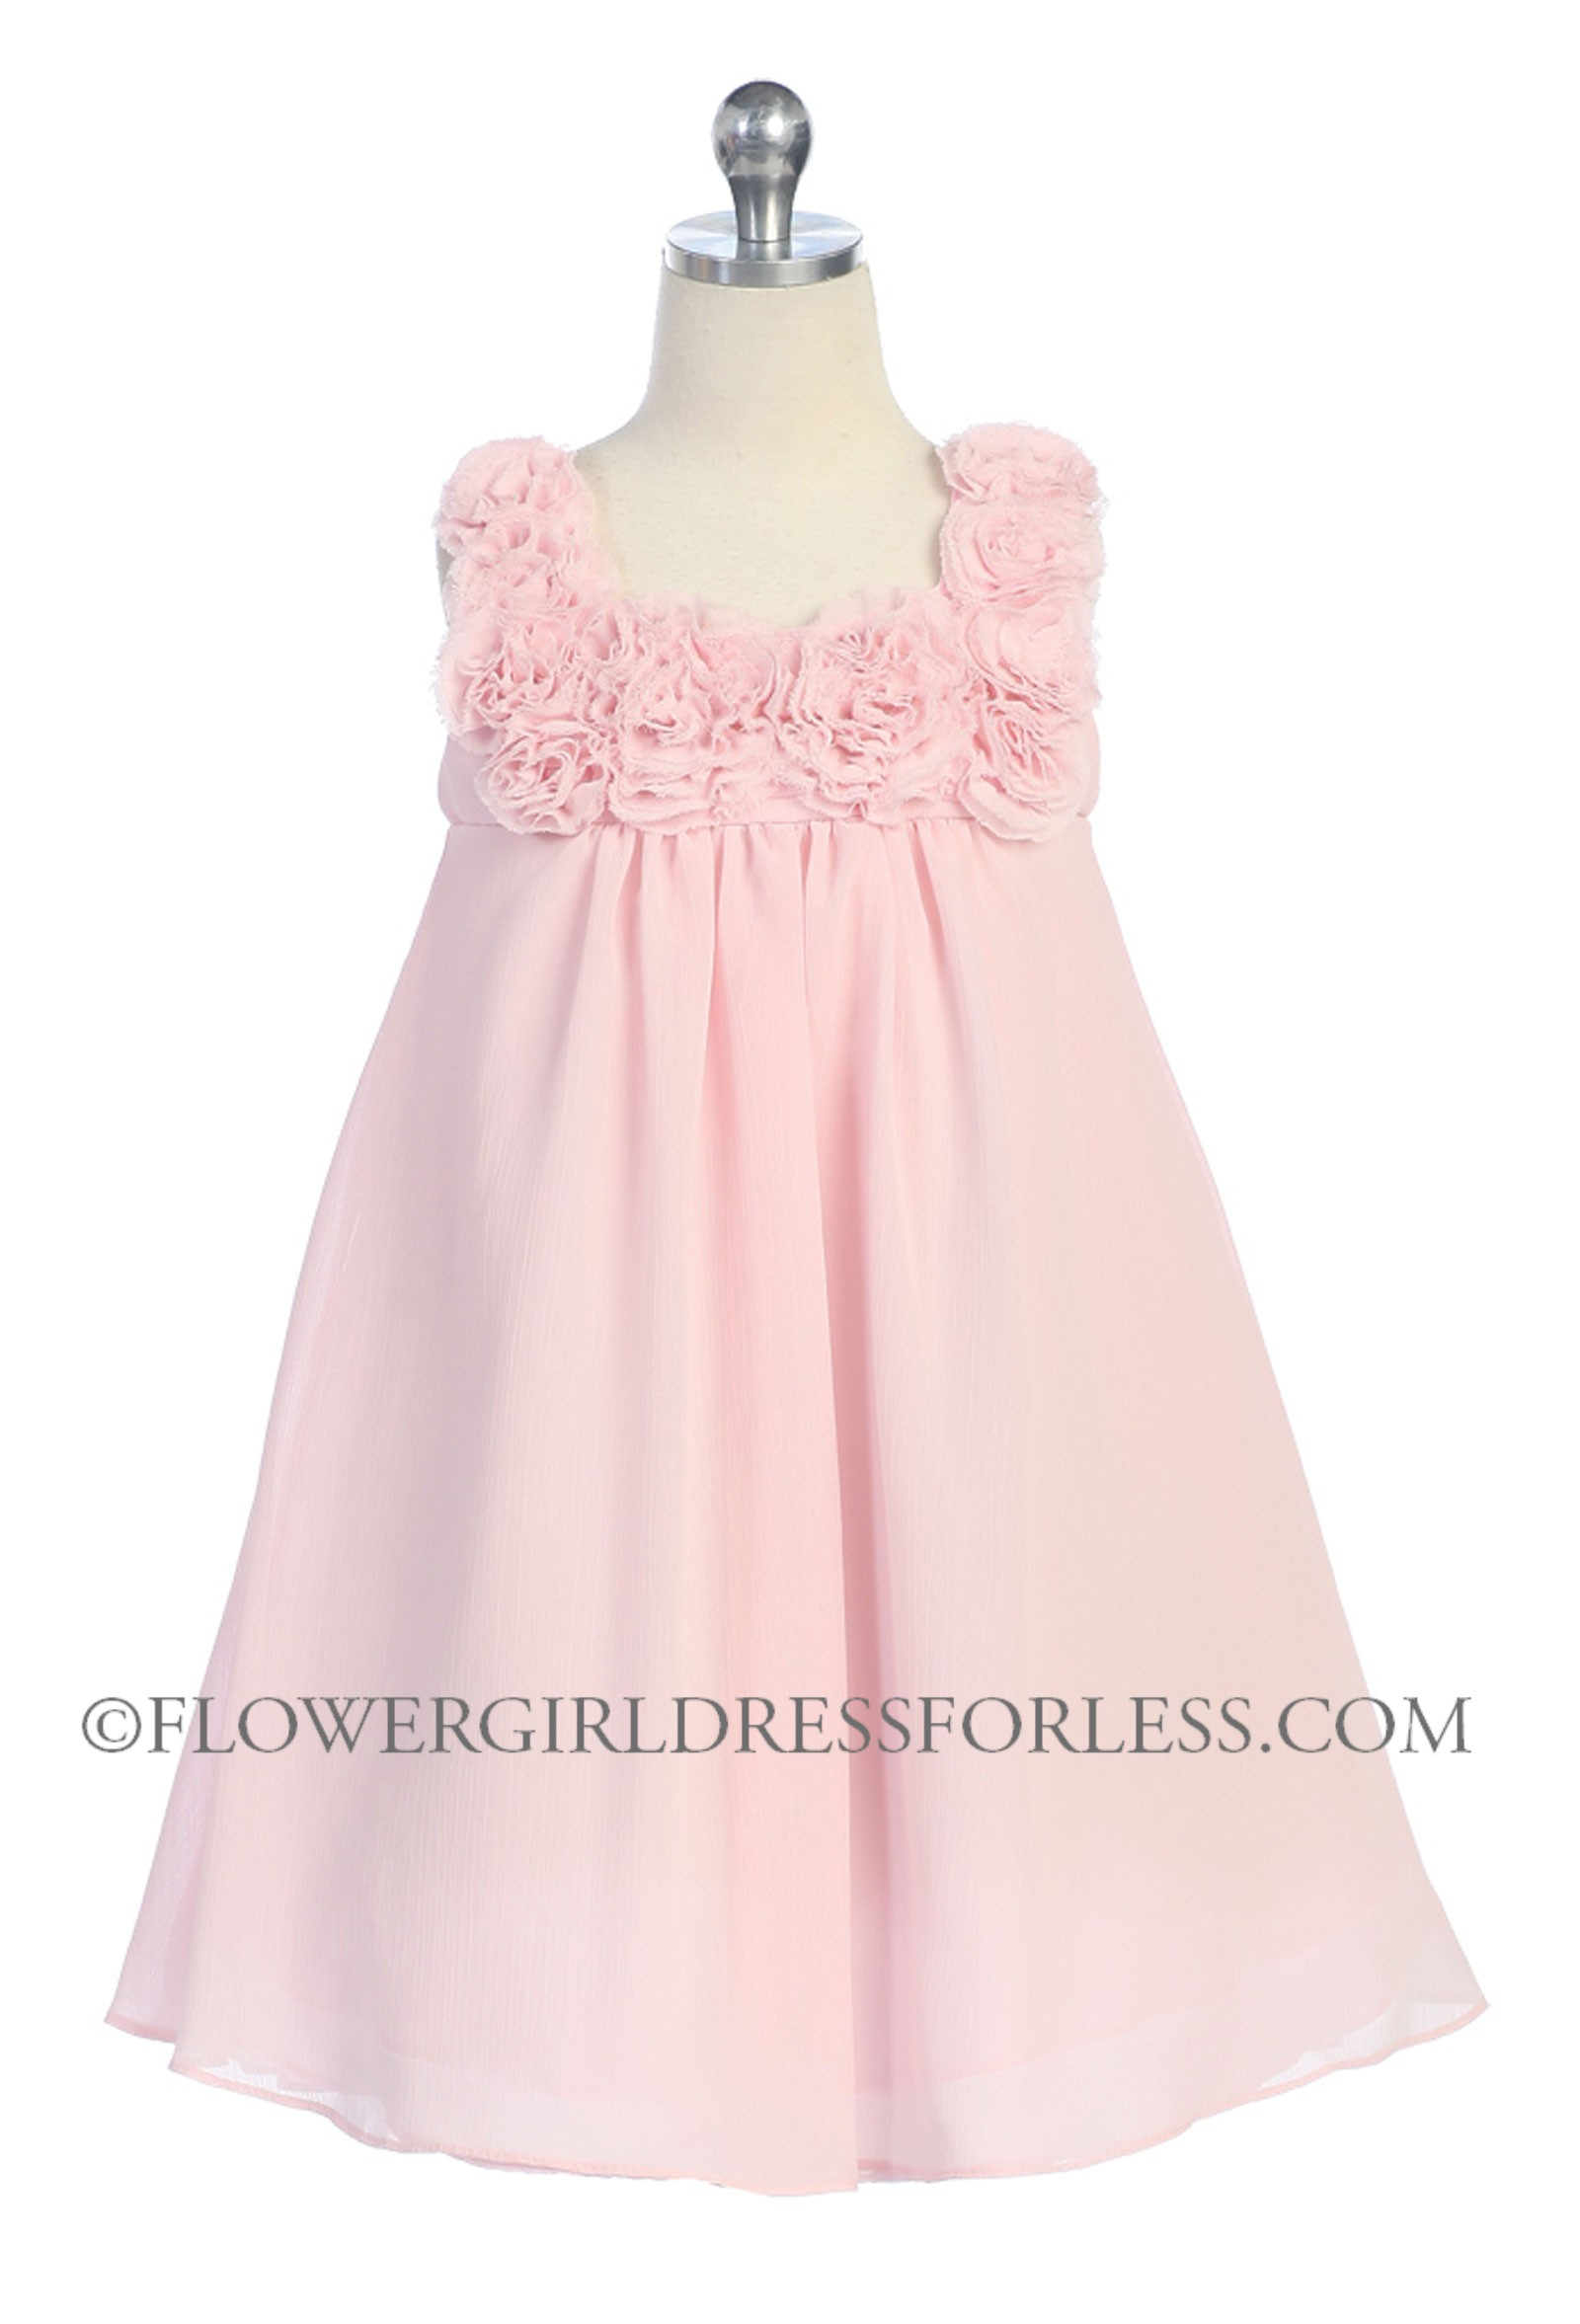 Shop for light pink girls dress online at Target. Free shipping on purchases over $35 and save 5% every day with your Target REDcard.